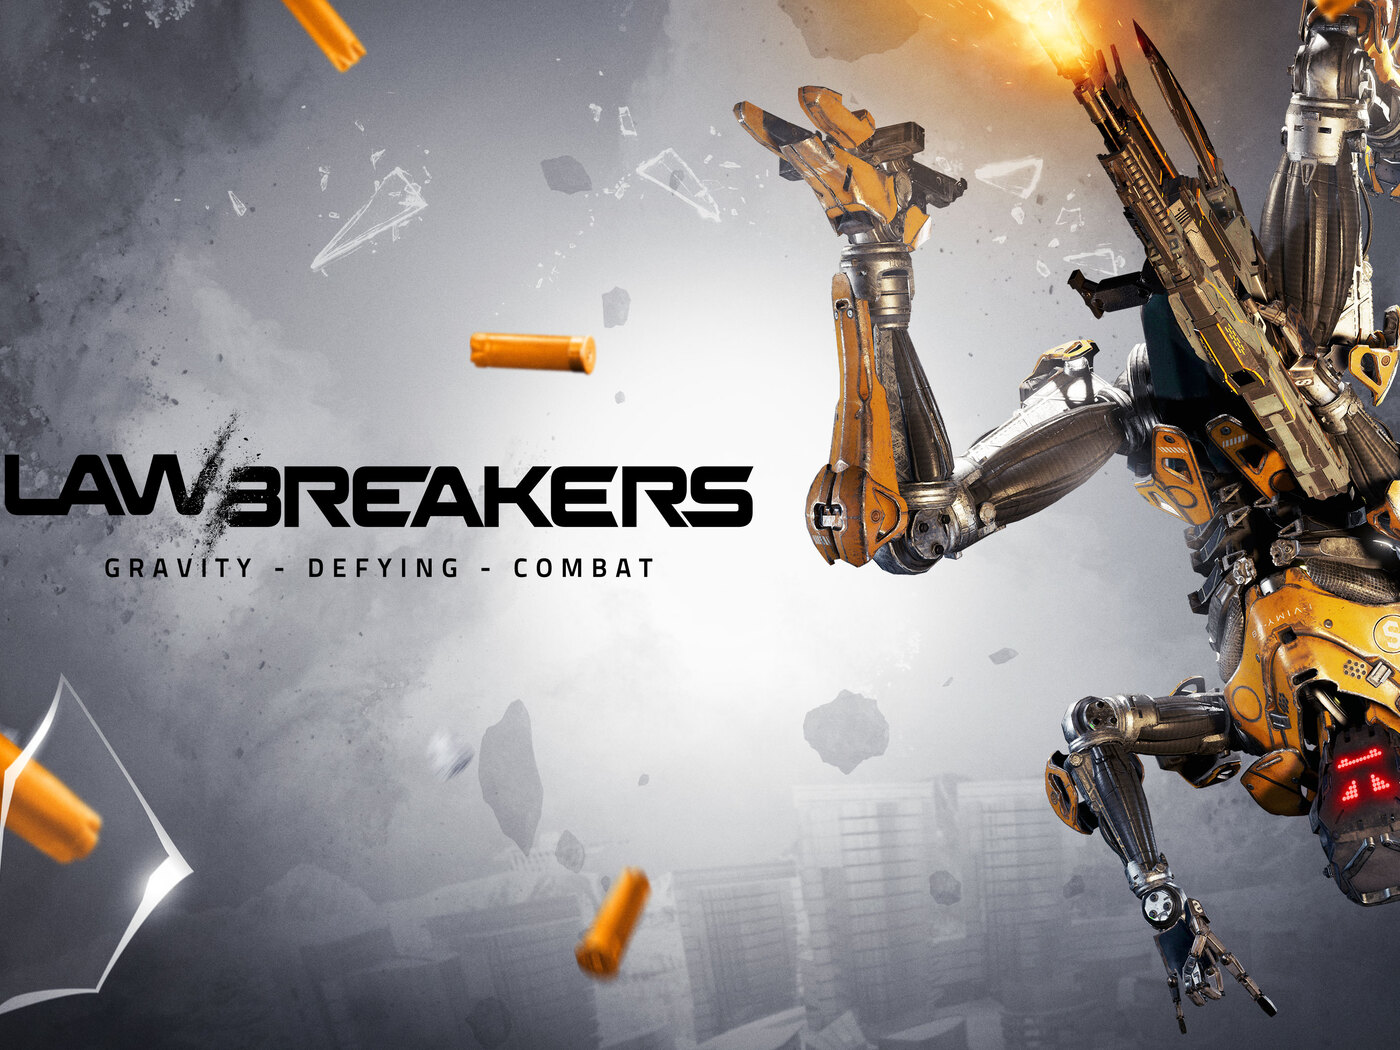 lawbreakers-2017-video-game-01.jpg